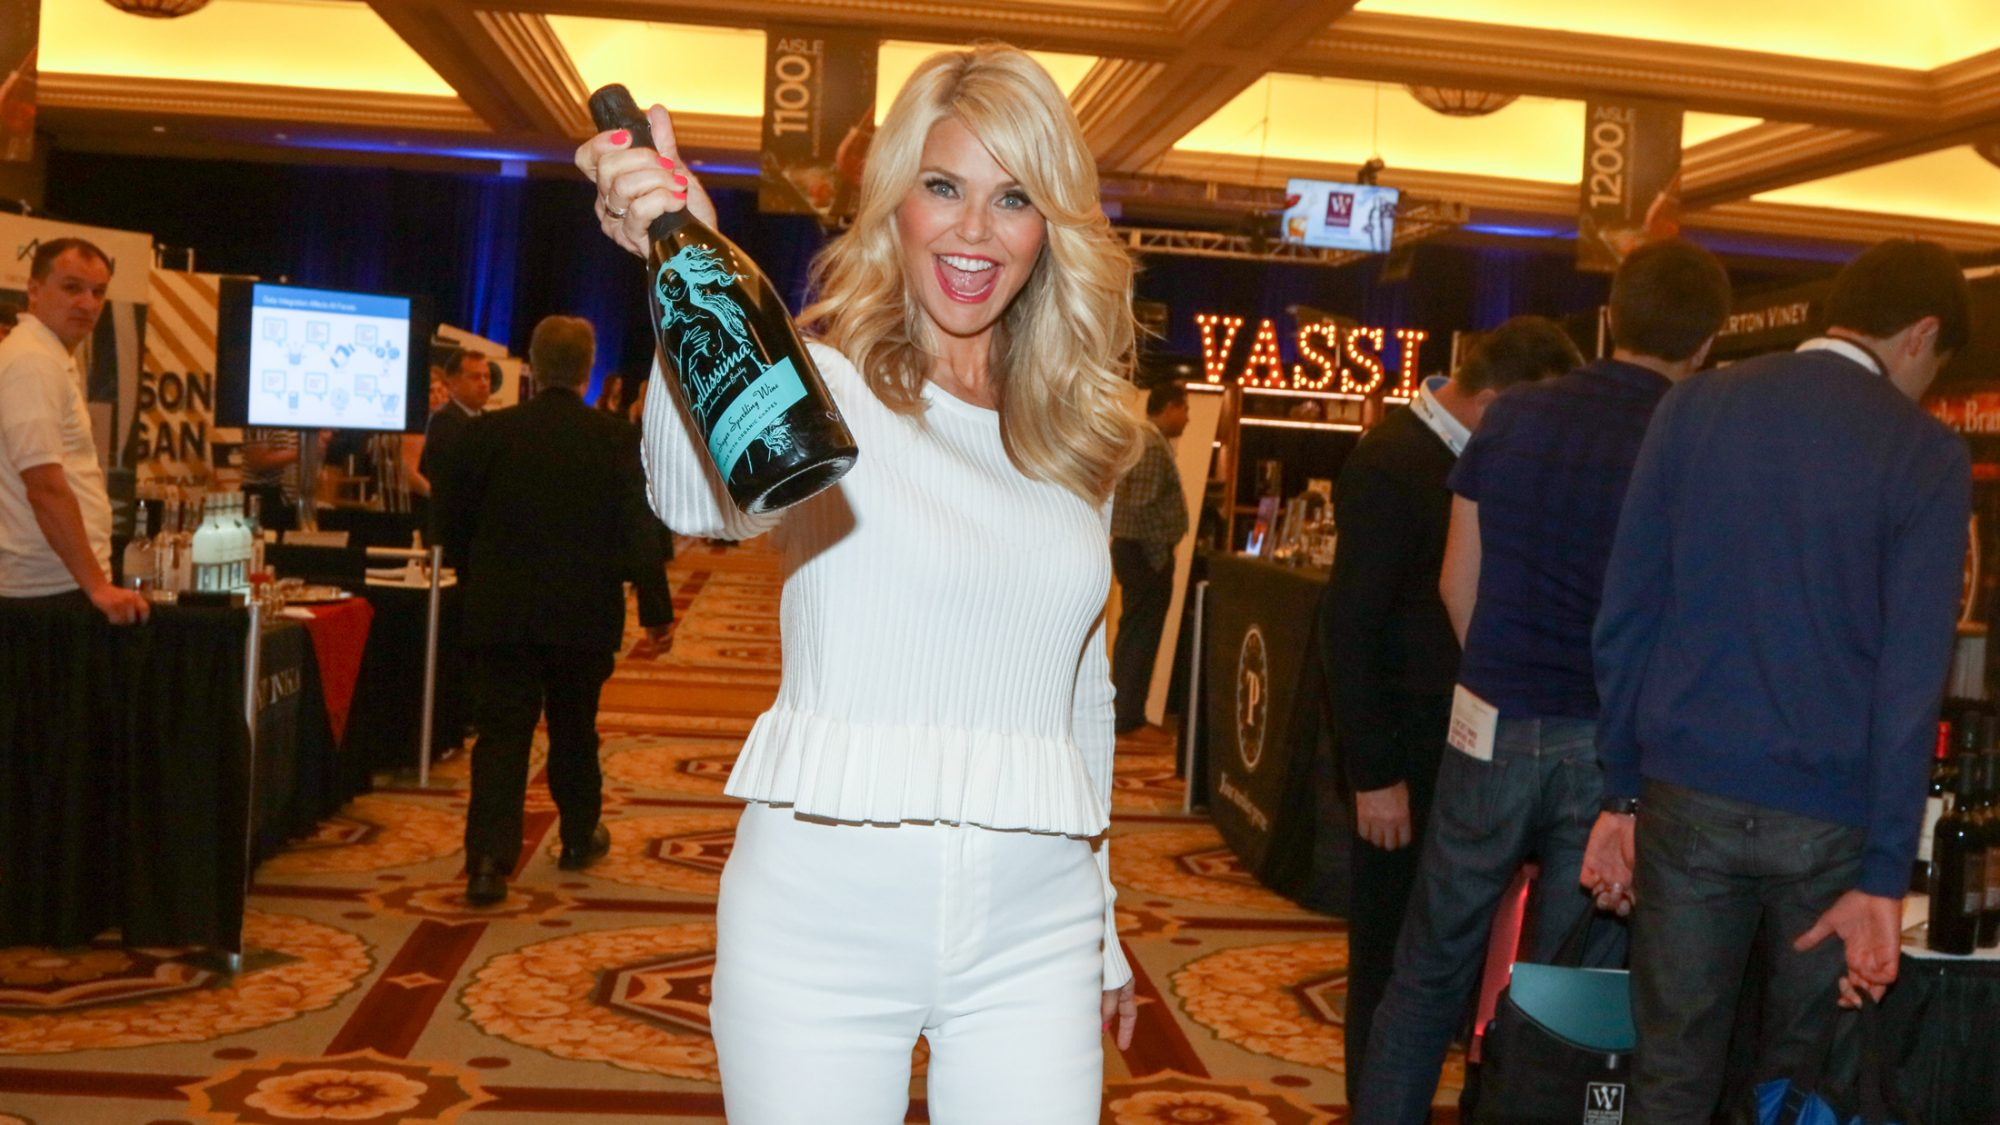 Christie Brinkley Just Launched Her Own Prosecco